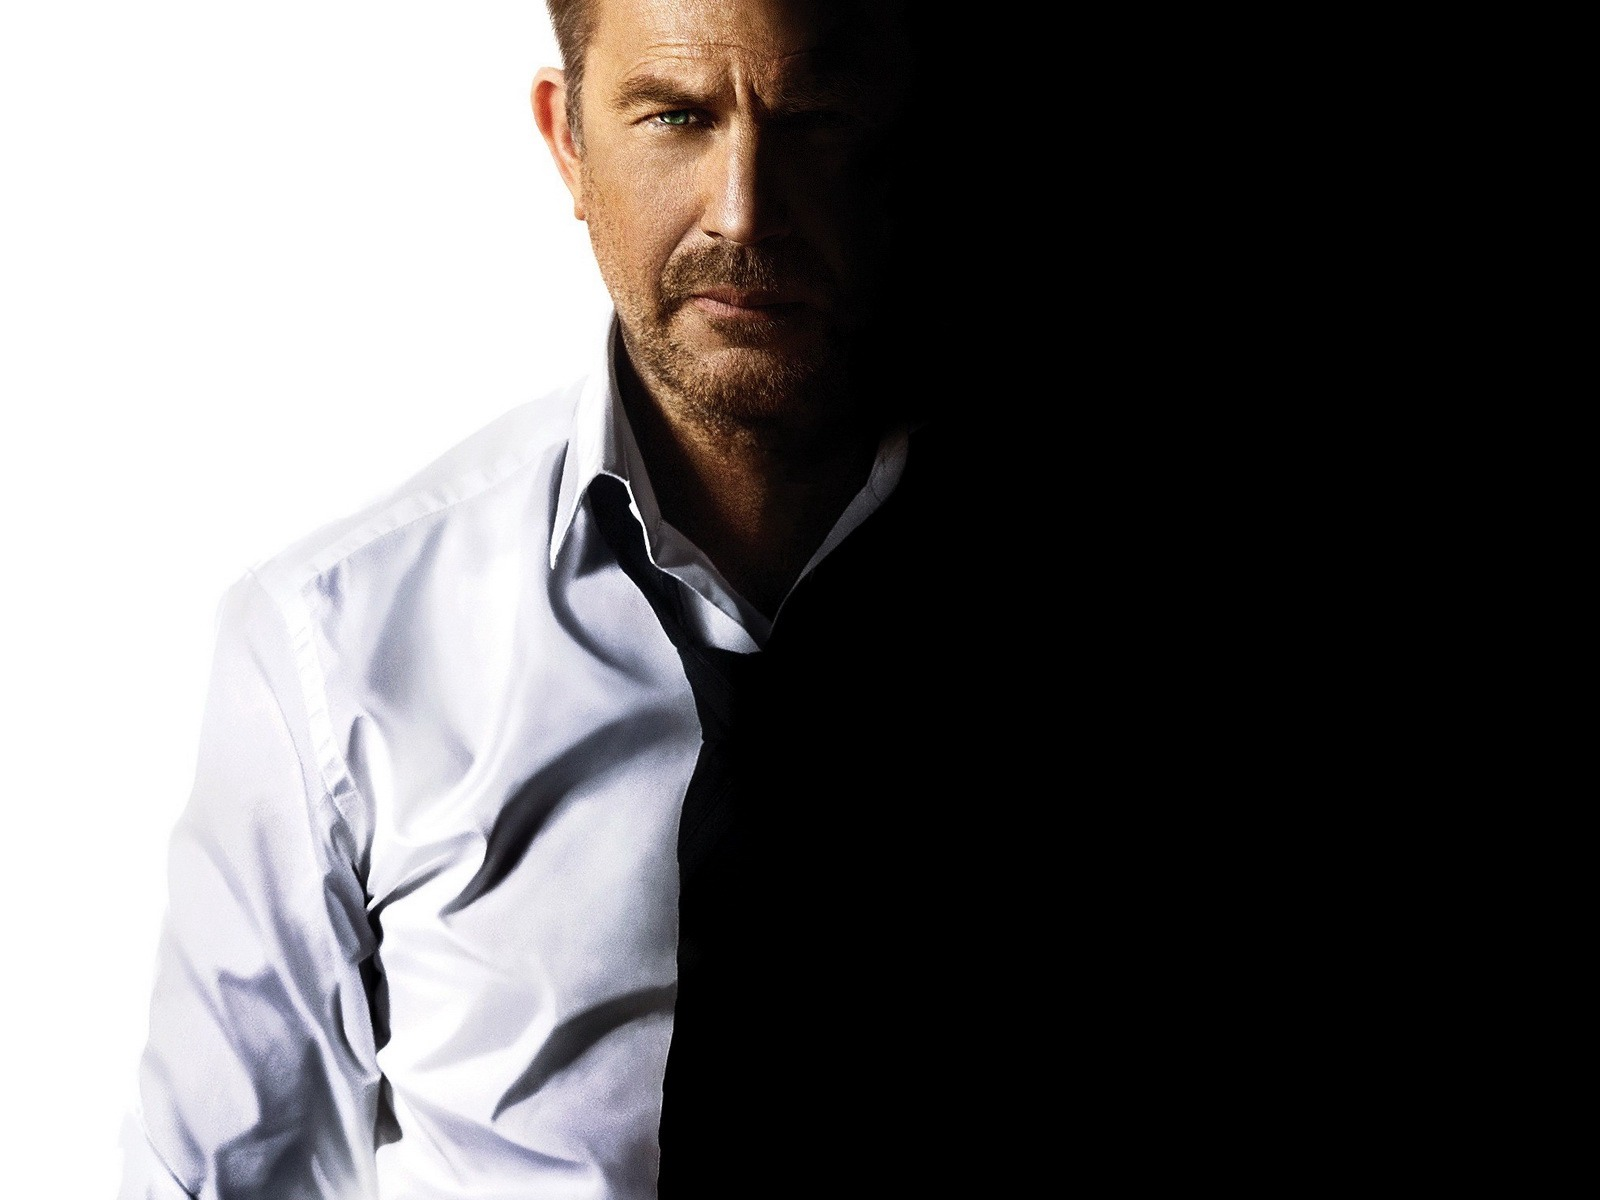 1600x1200 - Kevin Costner Wallpapers 6